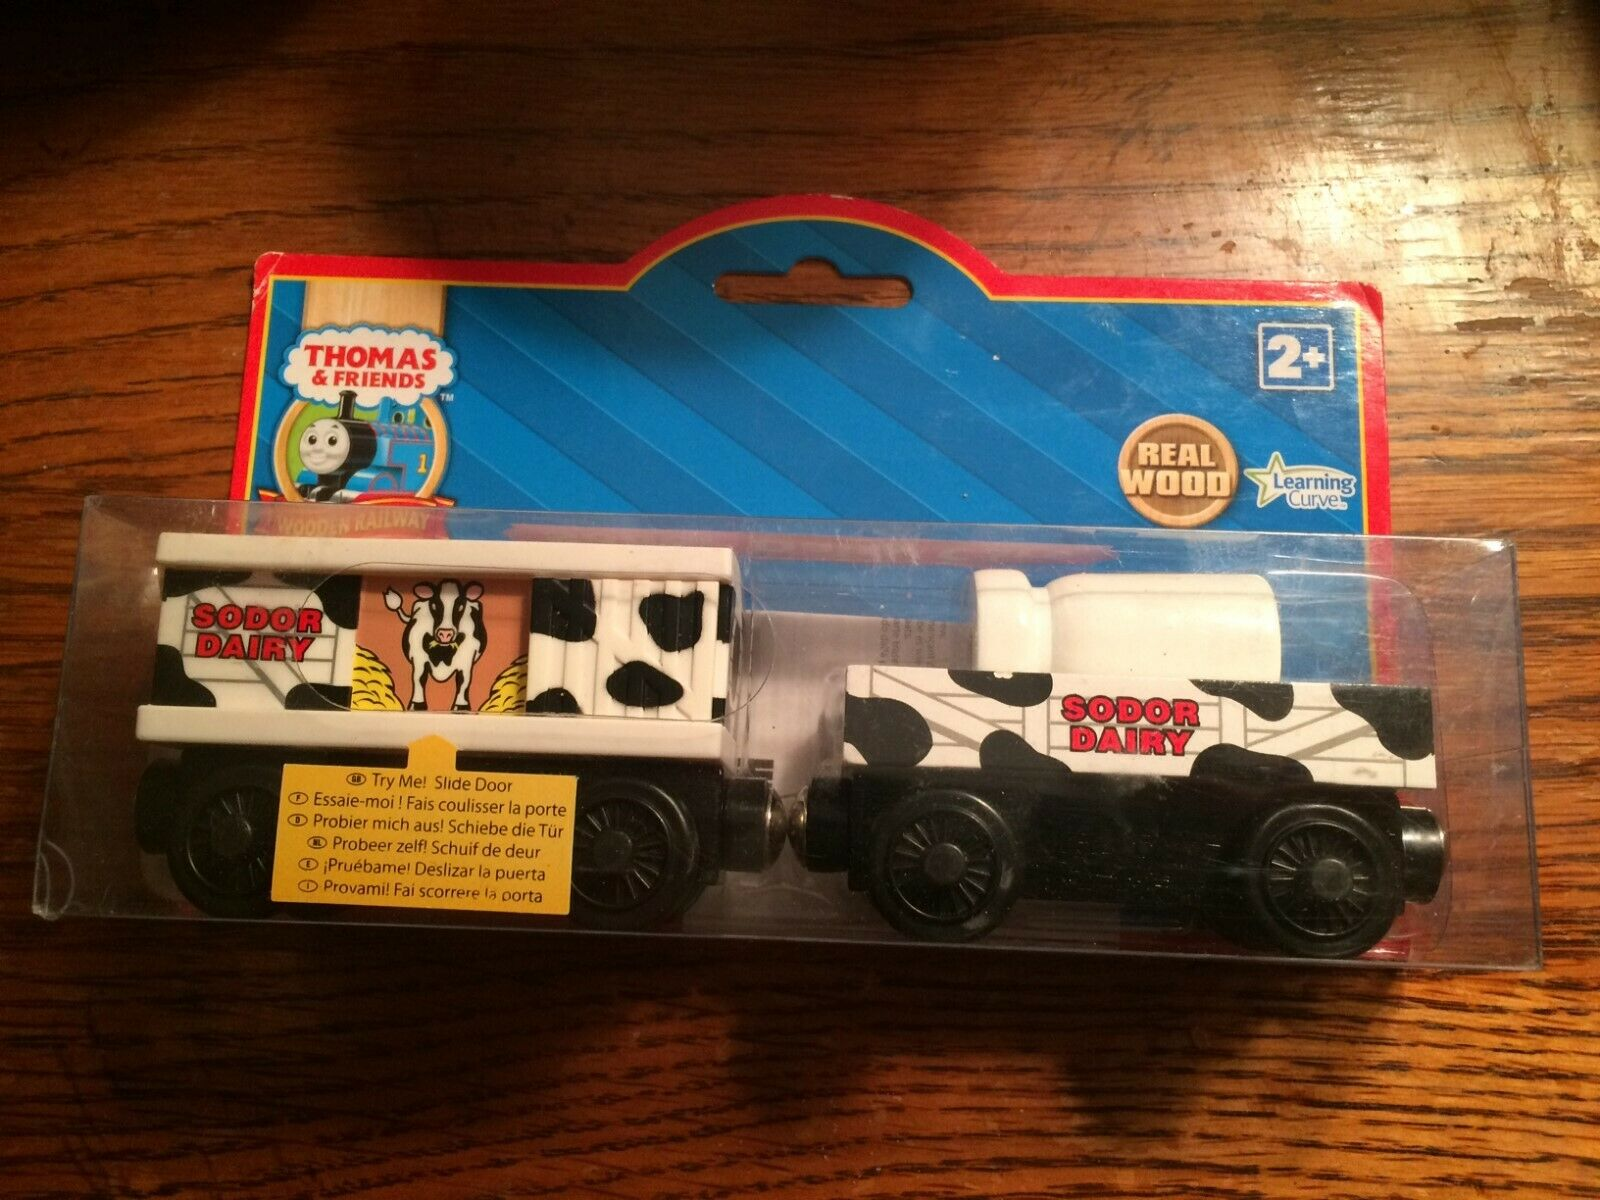 Sodor Dairy Cars for the Thomas Wooden Railway System New in Package